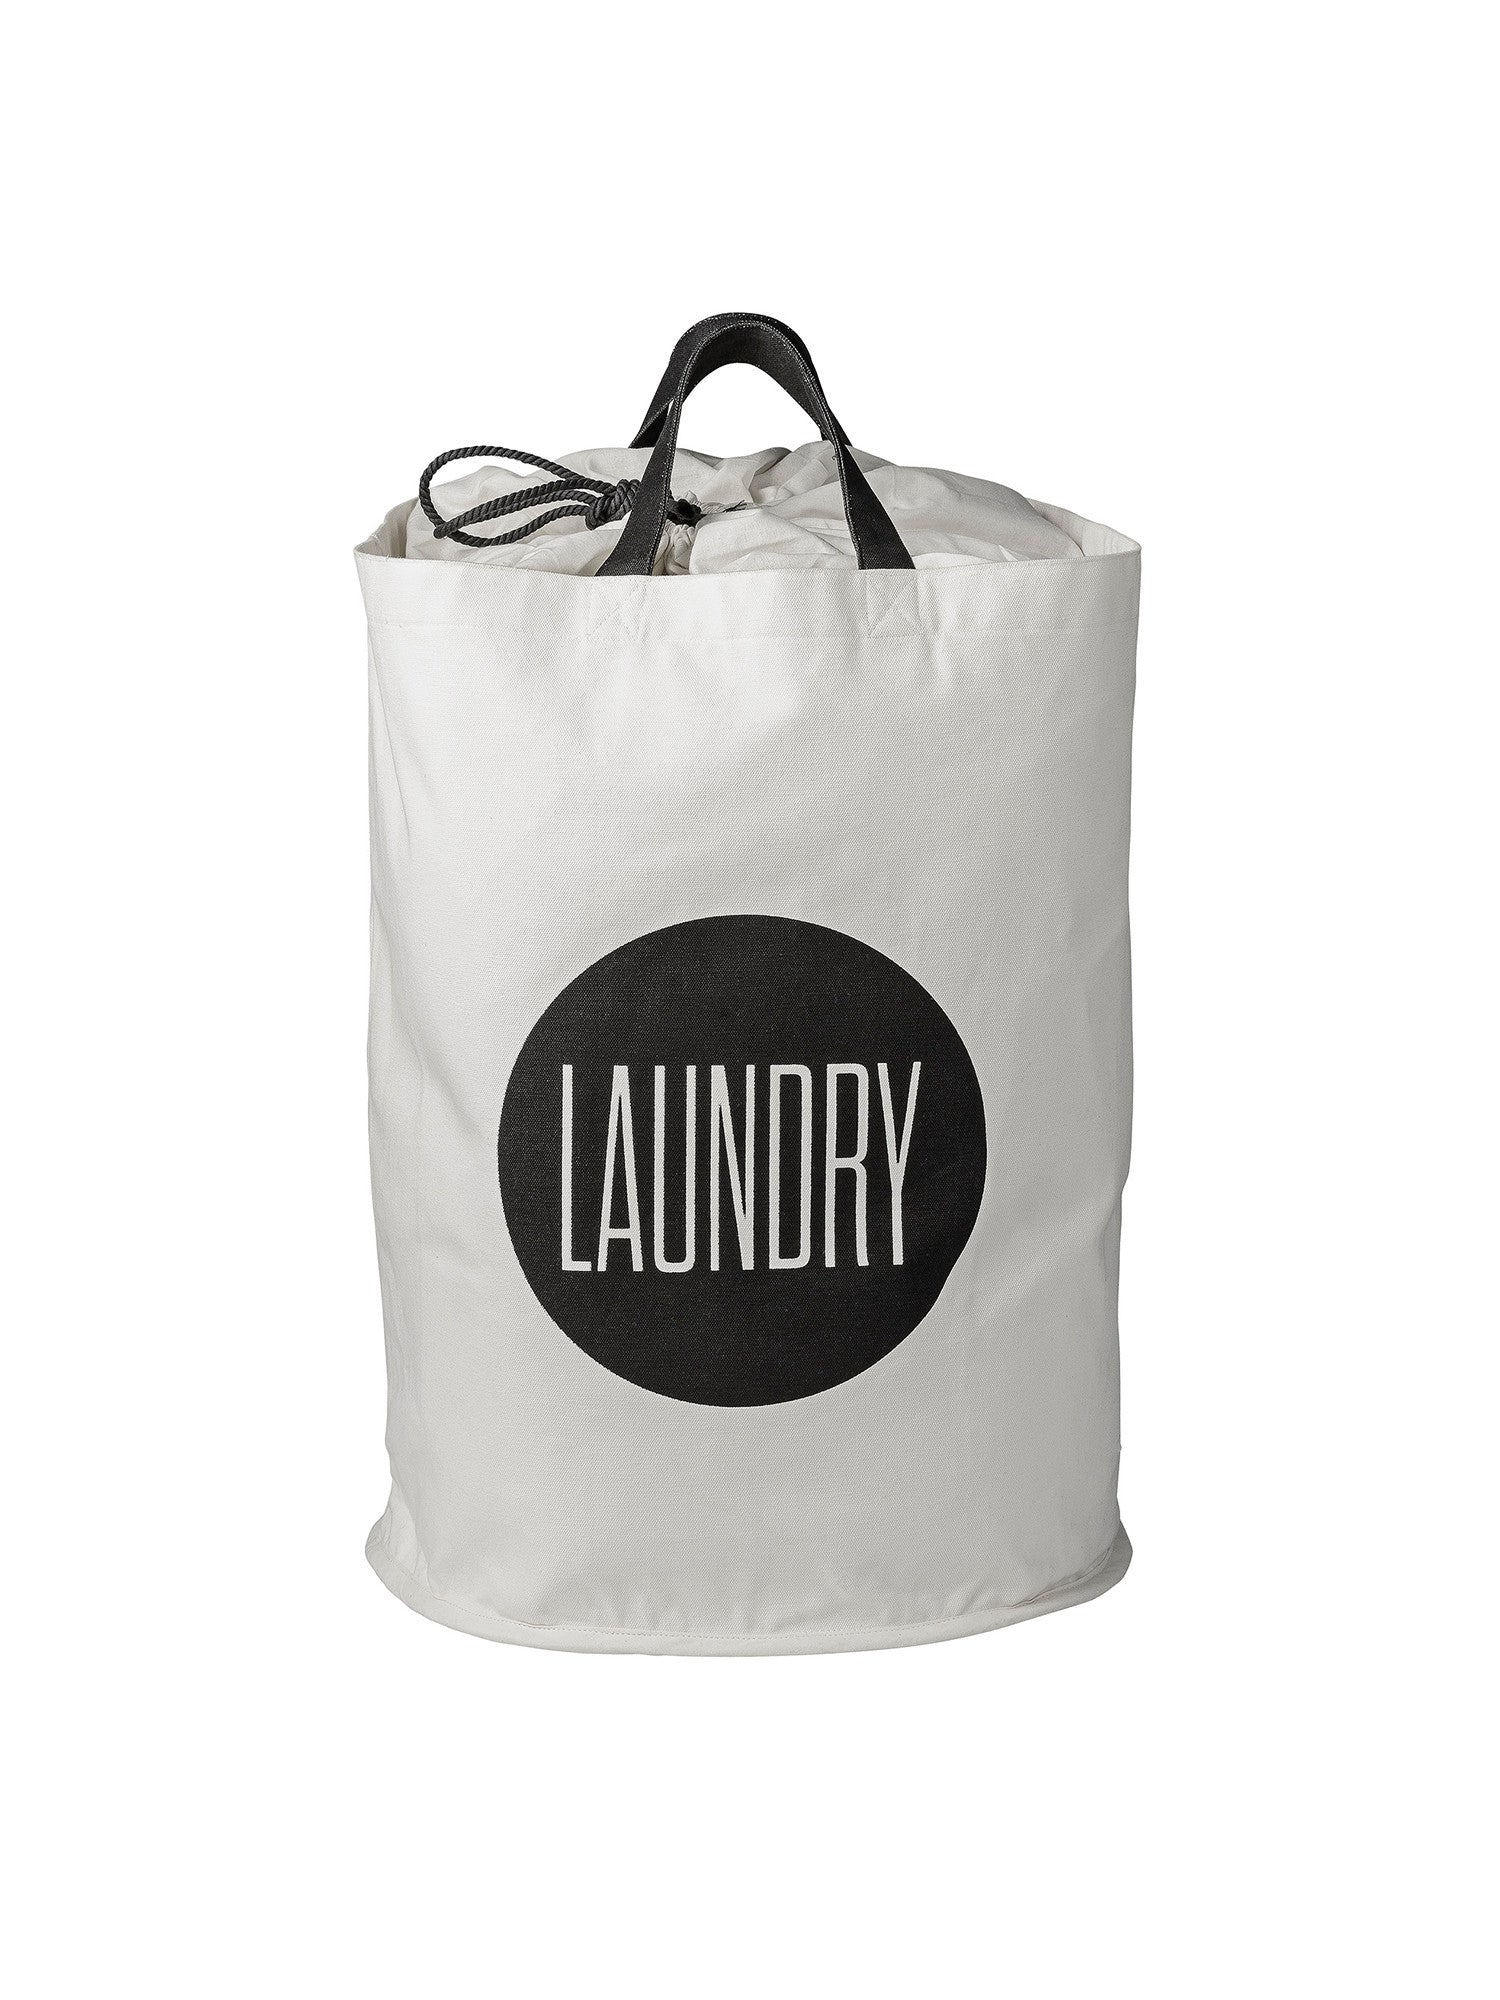 Monochrome Laundry Bag #62000068